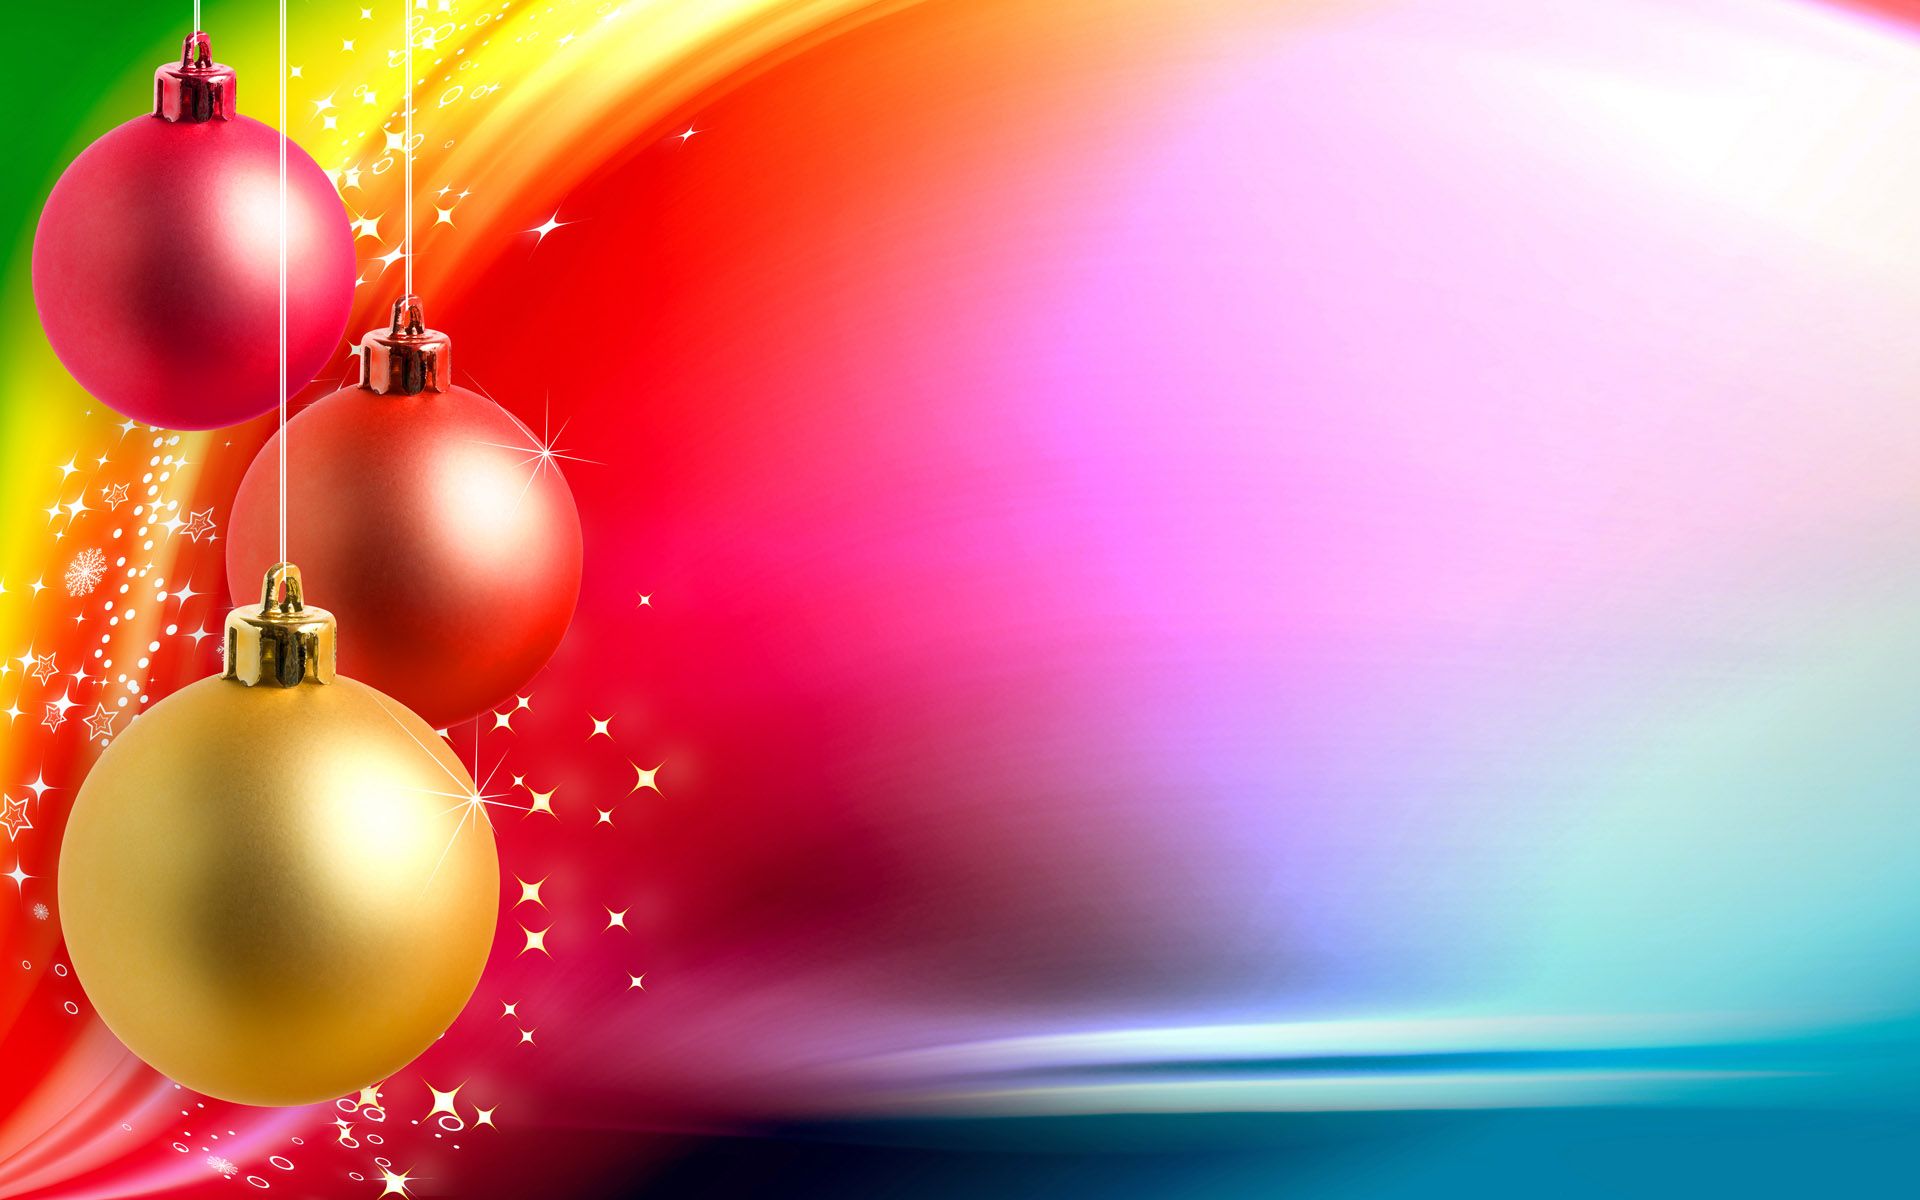 Christmas wallpaper 25889